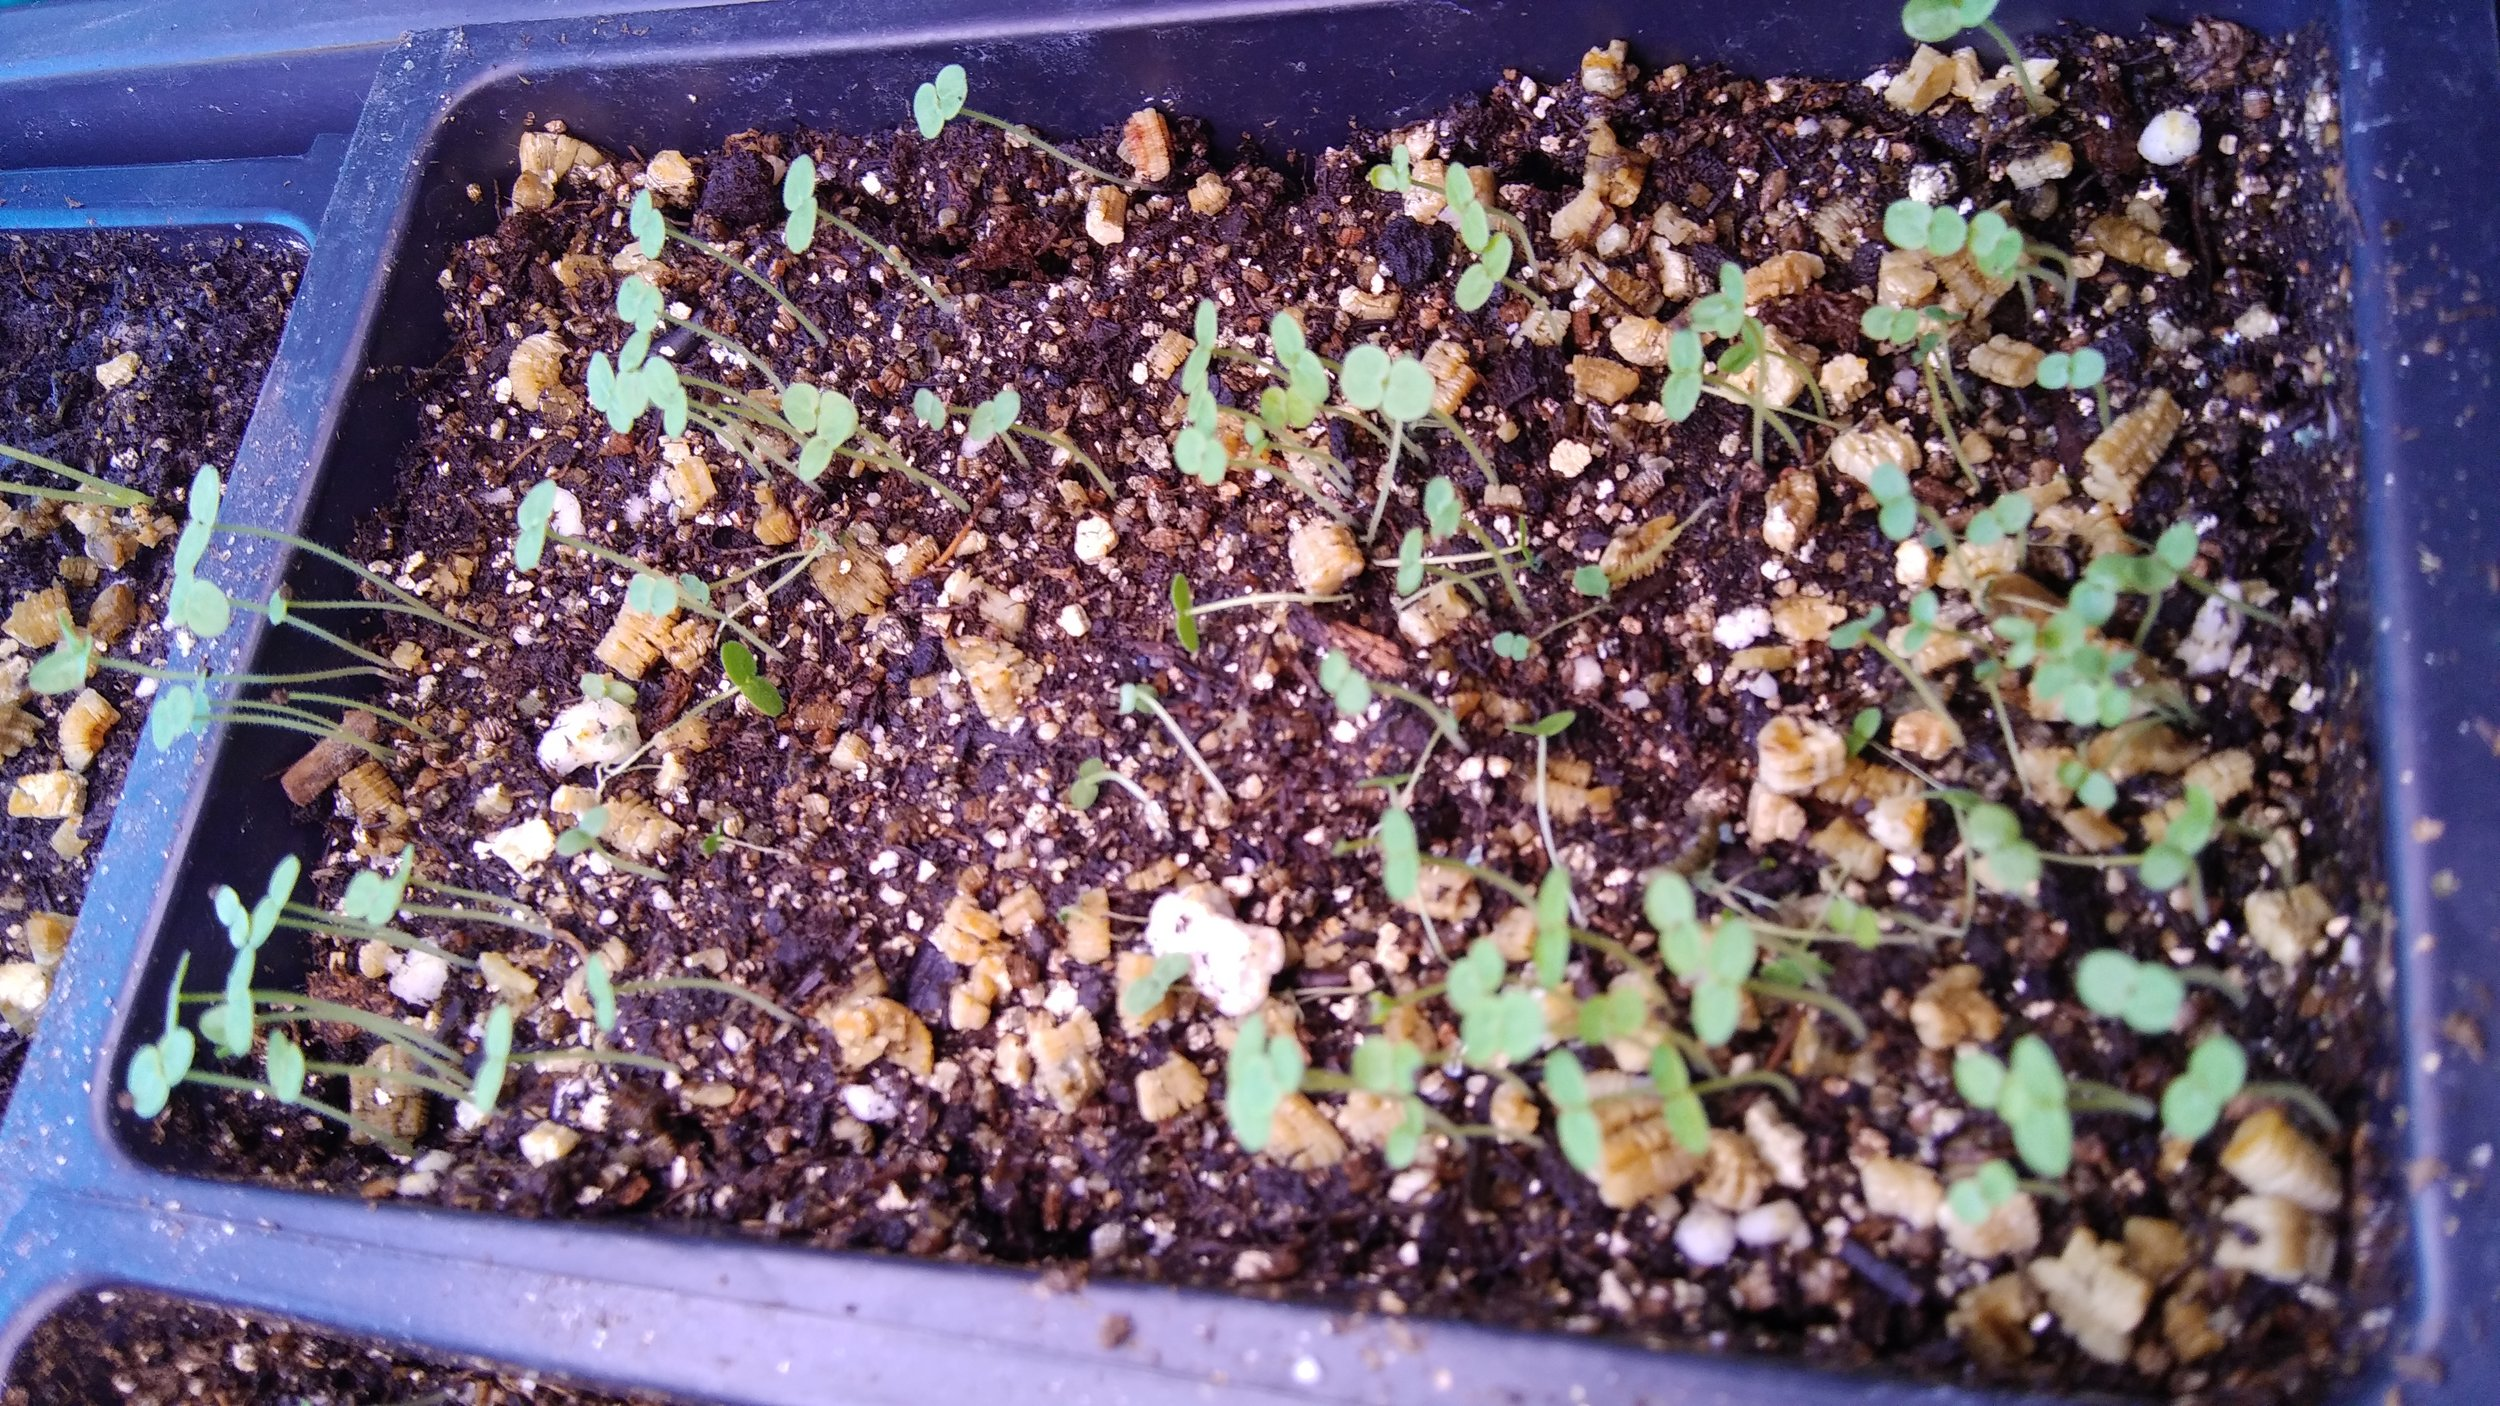 young madame butterfly snapdragon seedlings emerging. Photo by Erin Schneider